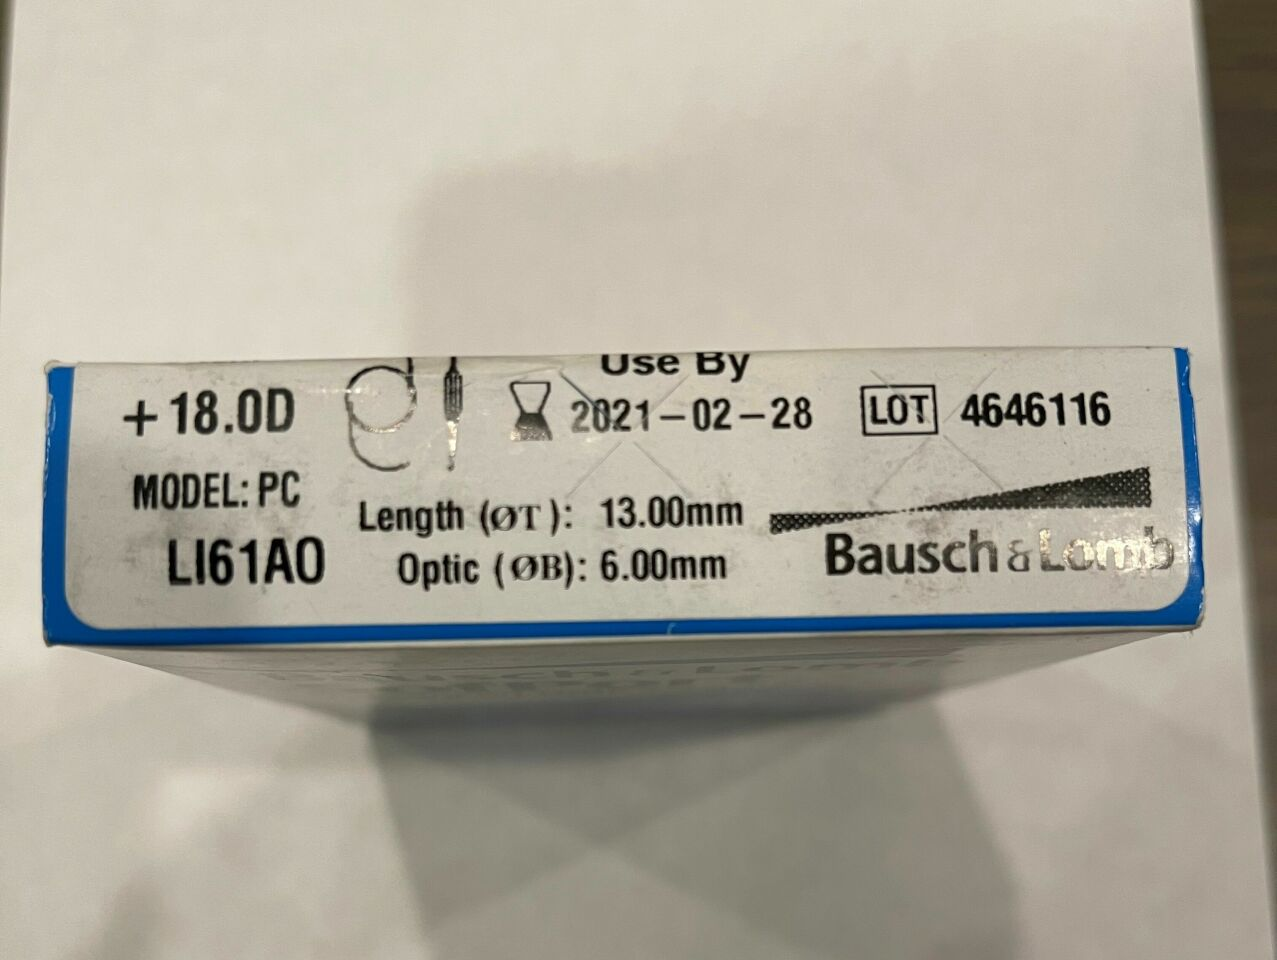 BAUSCH & LOMB SofPort Advanced Optics Aspheric Intraocular Lens Power + 18.0D Model: PC LI61A0 Exp. Date 02/28/2021 Ref #: LI61AOR1800